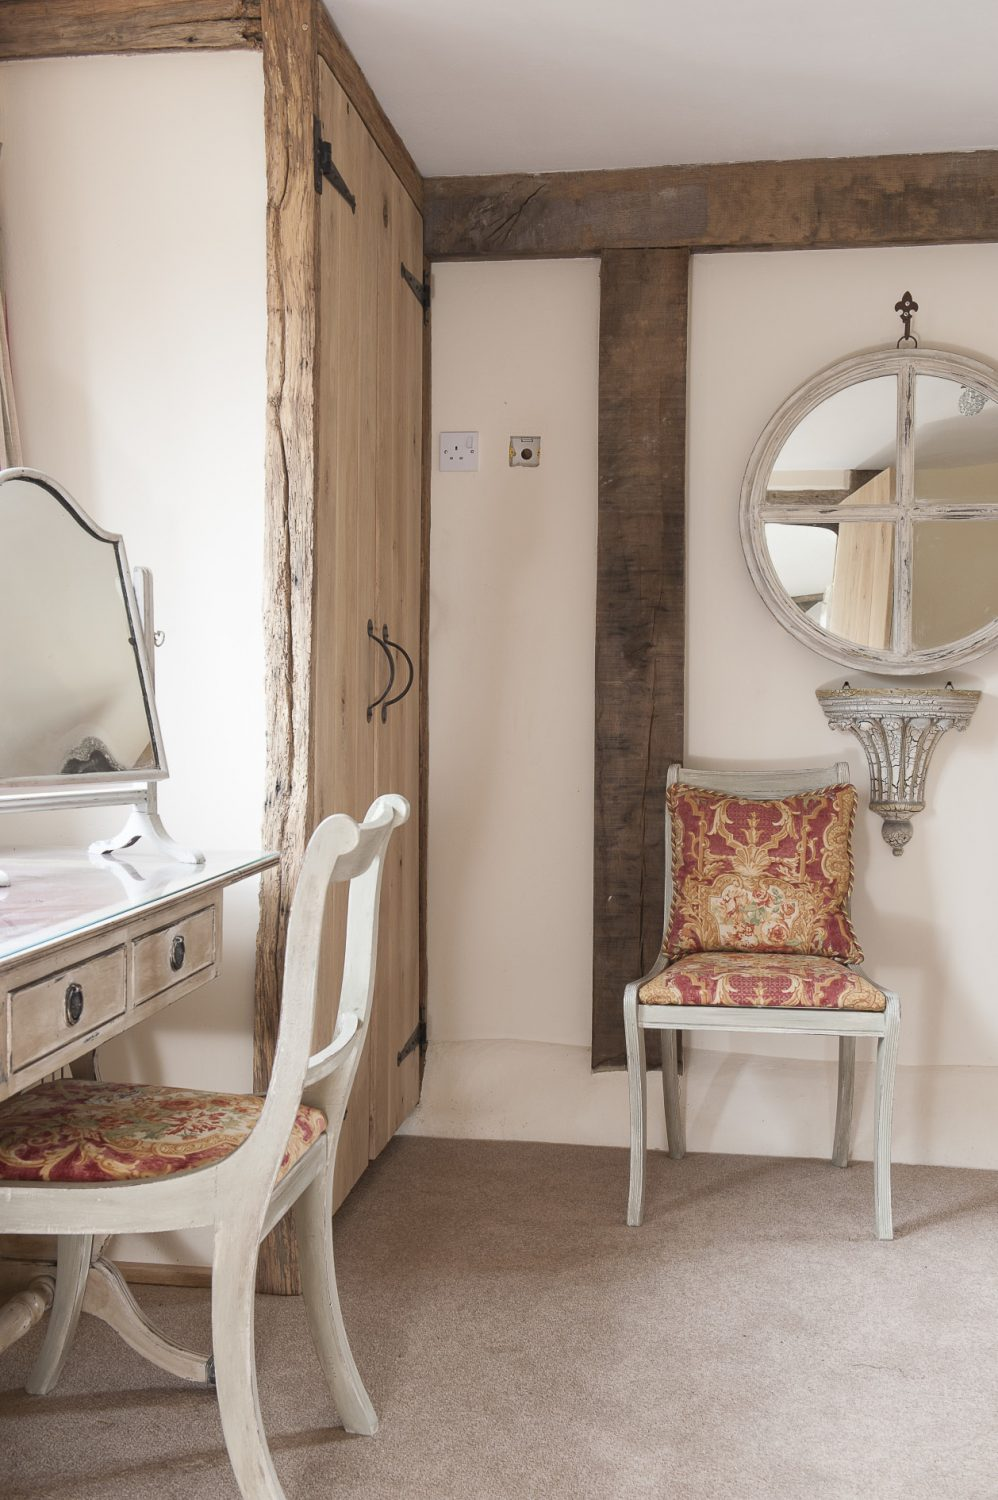 In the main bedroom, two dining chairs have been painted white and covered in Beaumont & Fletcher